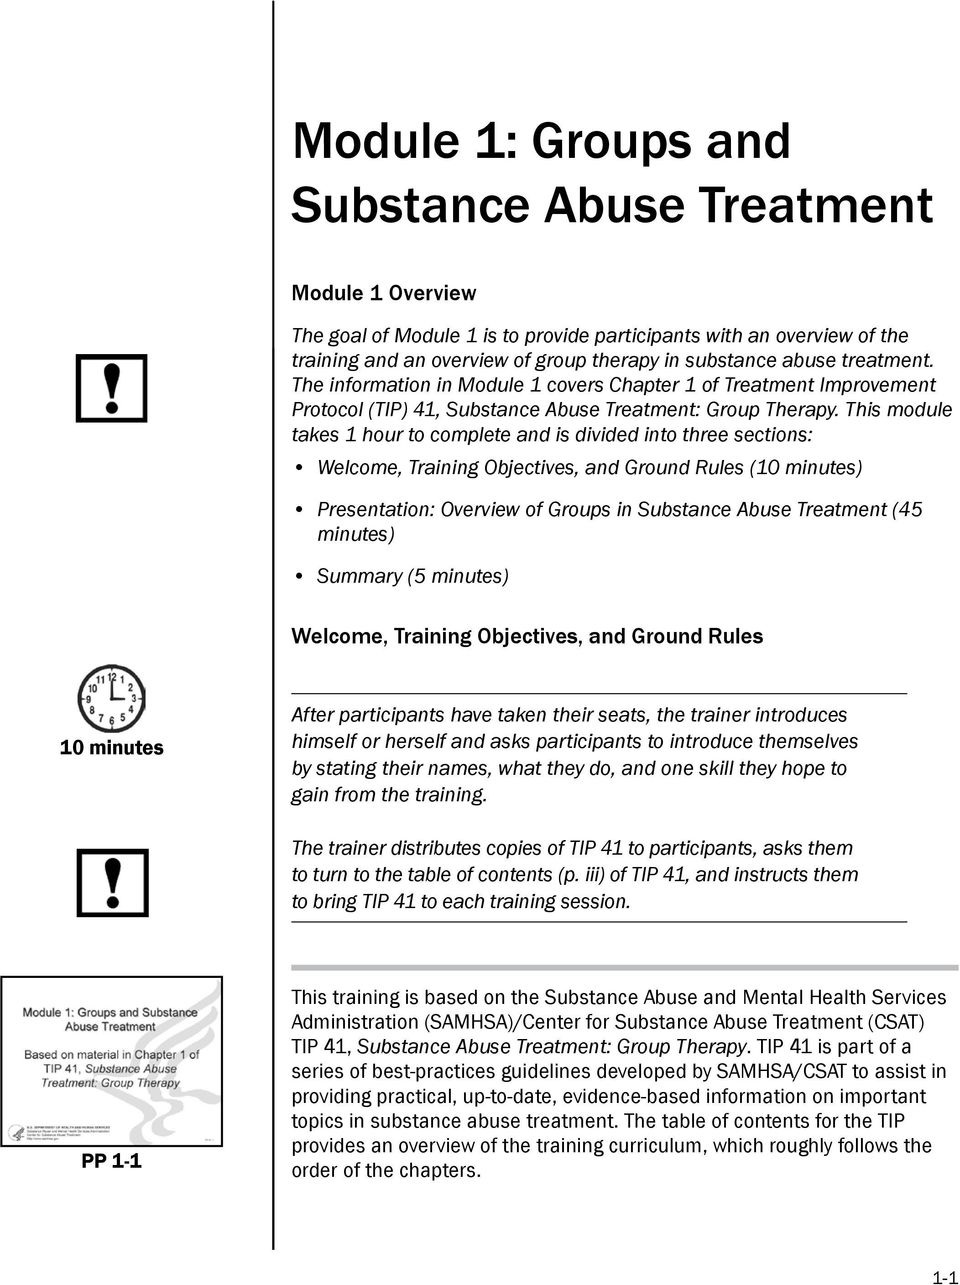 This module takes 1 hour to complete and is divided into three sections: Welcome, Training Objectives, and Ground Rules (10 minutes) Presentation: Overview of Groups in Substance Abuse Treatment (45